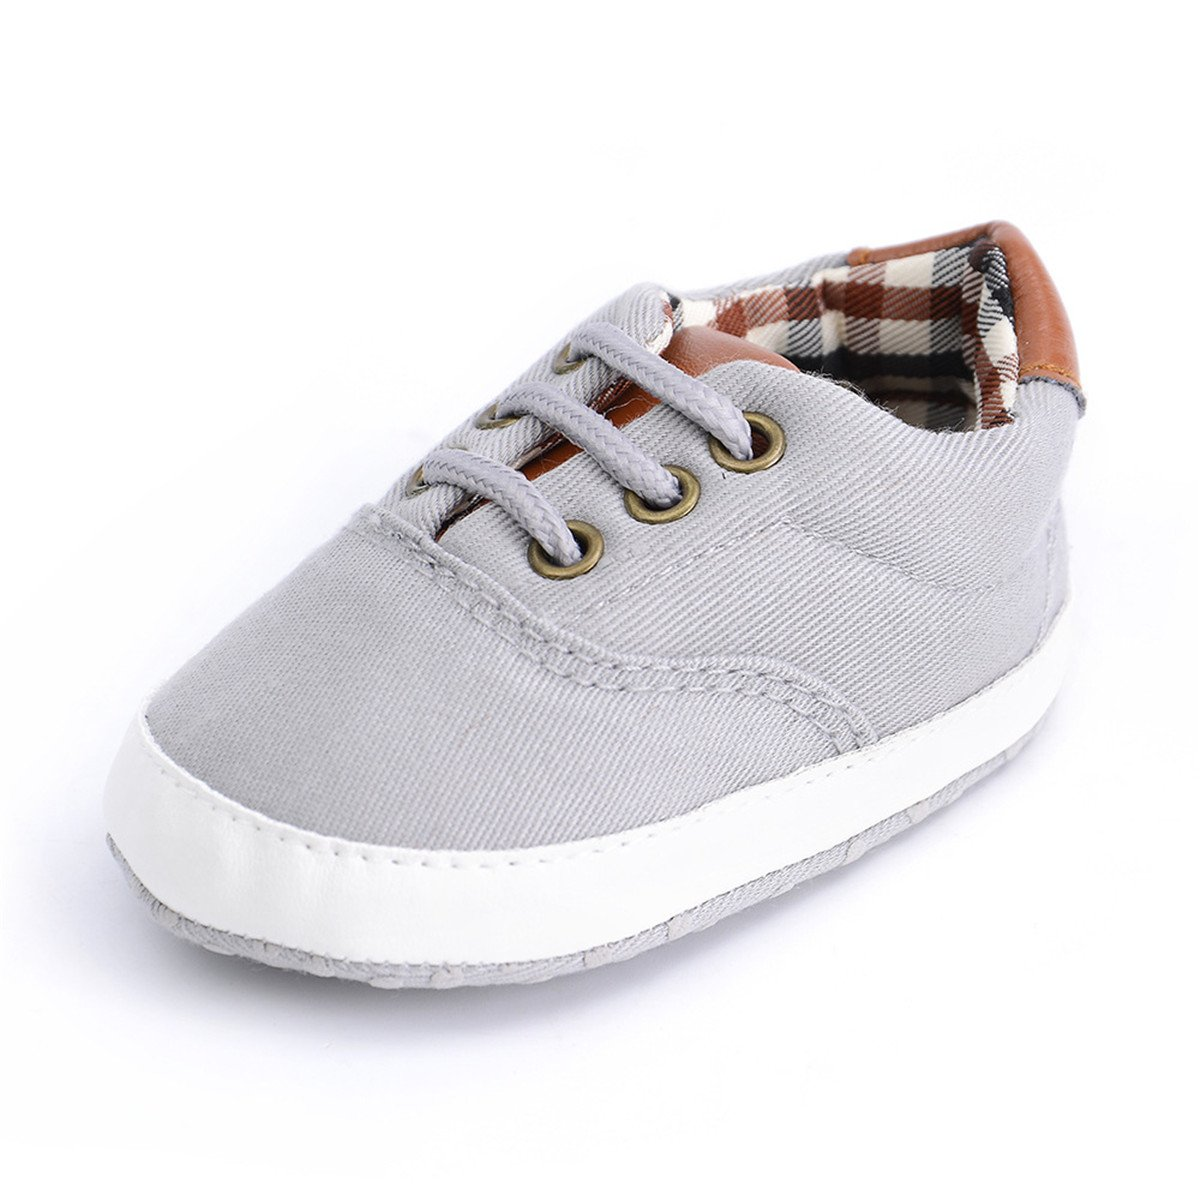 BENHERO Baby Boys Girls Canvas Toddler Sneaker Anti-Slip First Walkers Candy Shoes 0-24 Months 12 Colors (13cm(12-18months), B-Light Grey)